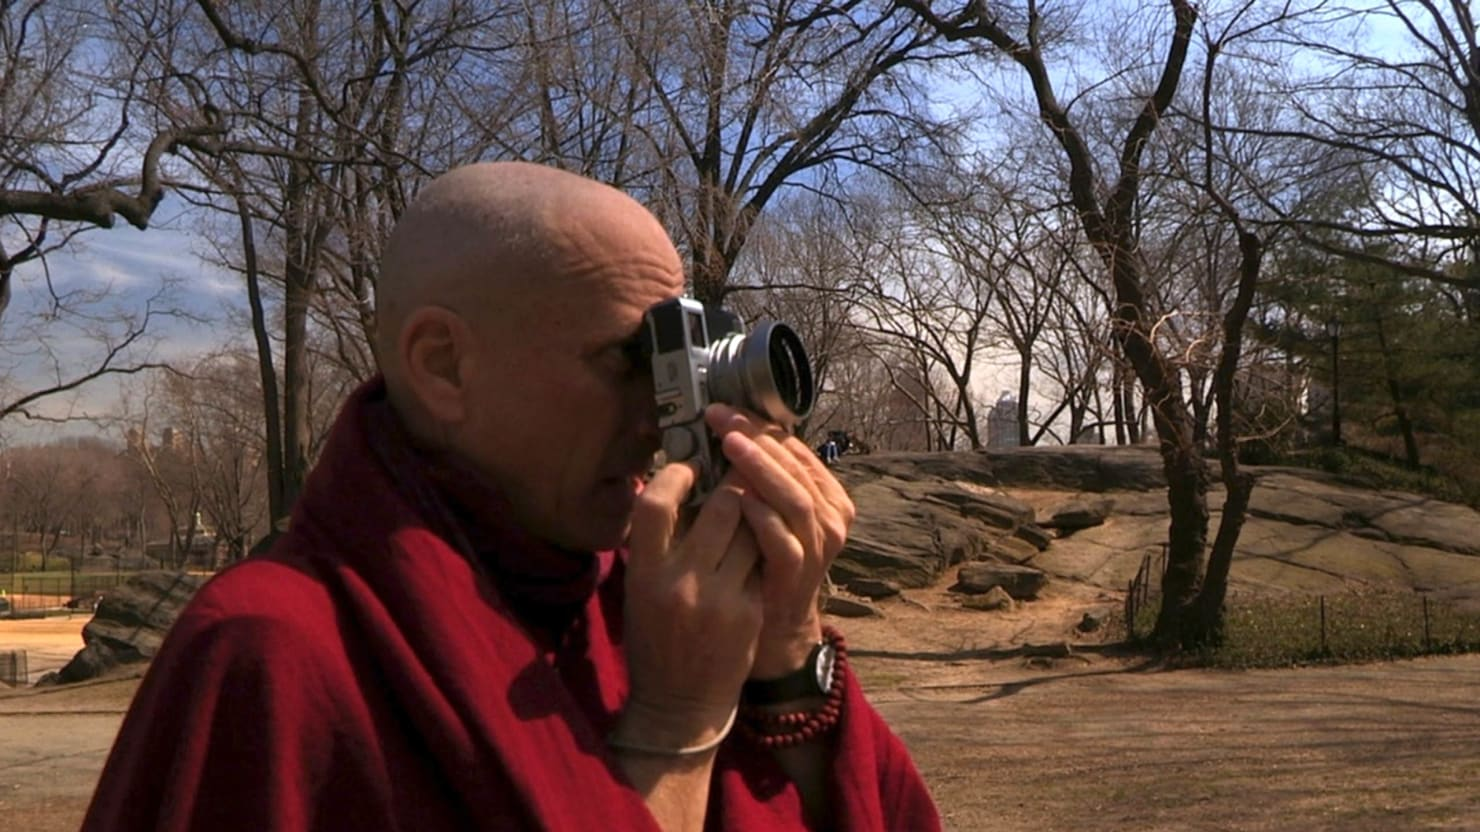 From Fashion Player to Photographer Monk